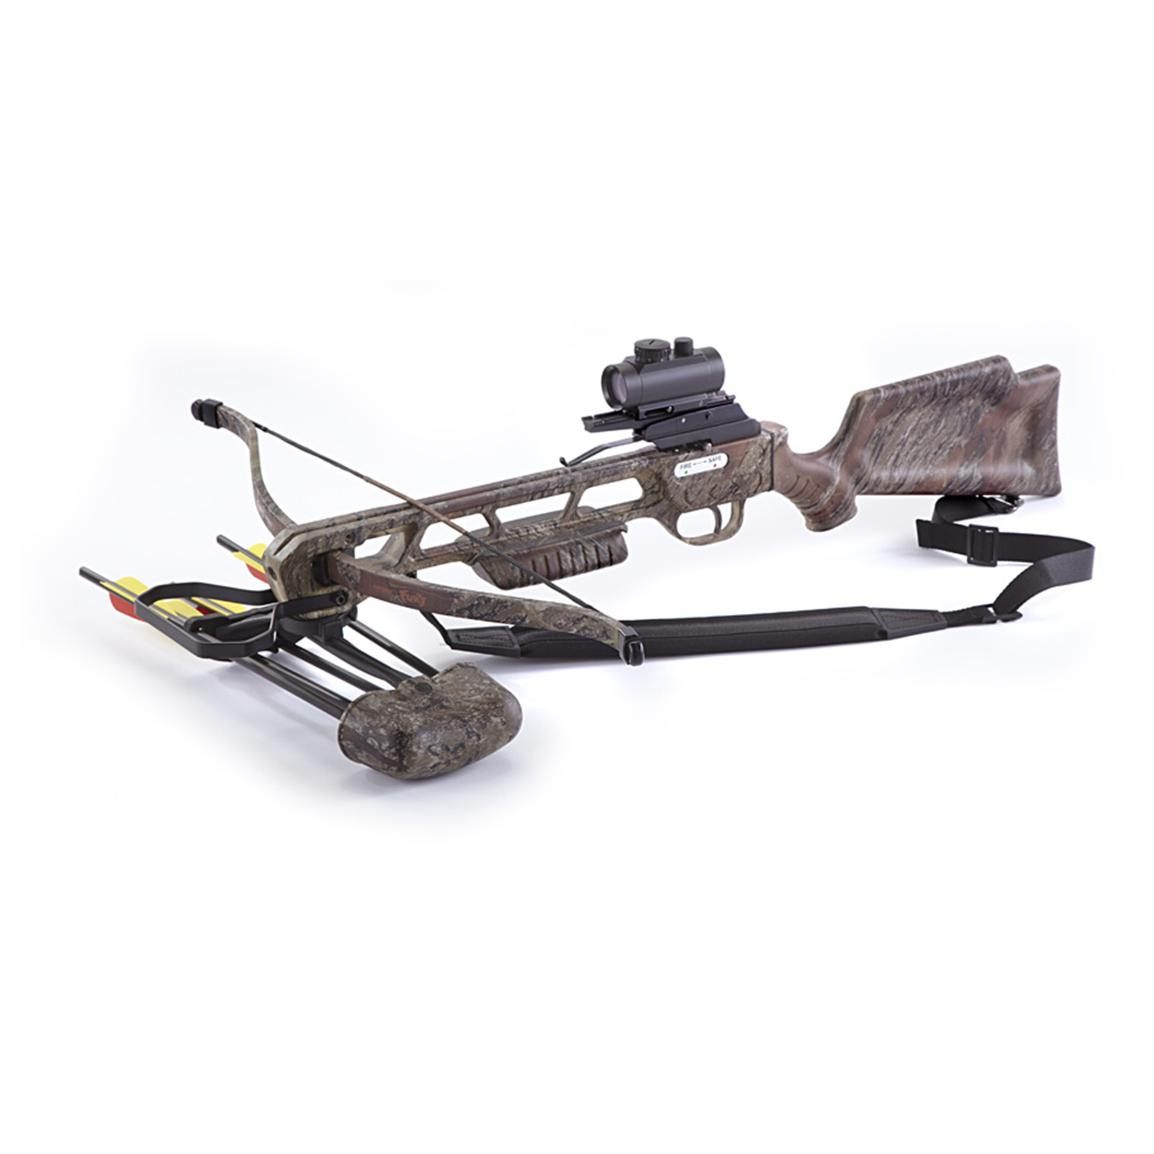 The arrow precision inferno fury crossbow is one of cheapest options right now